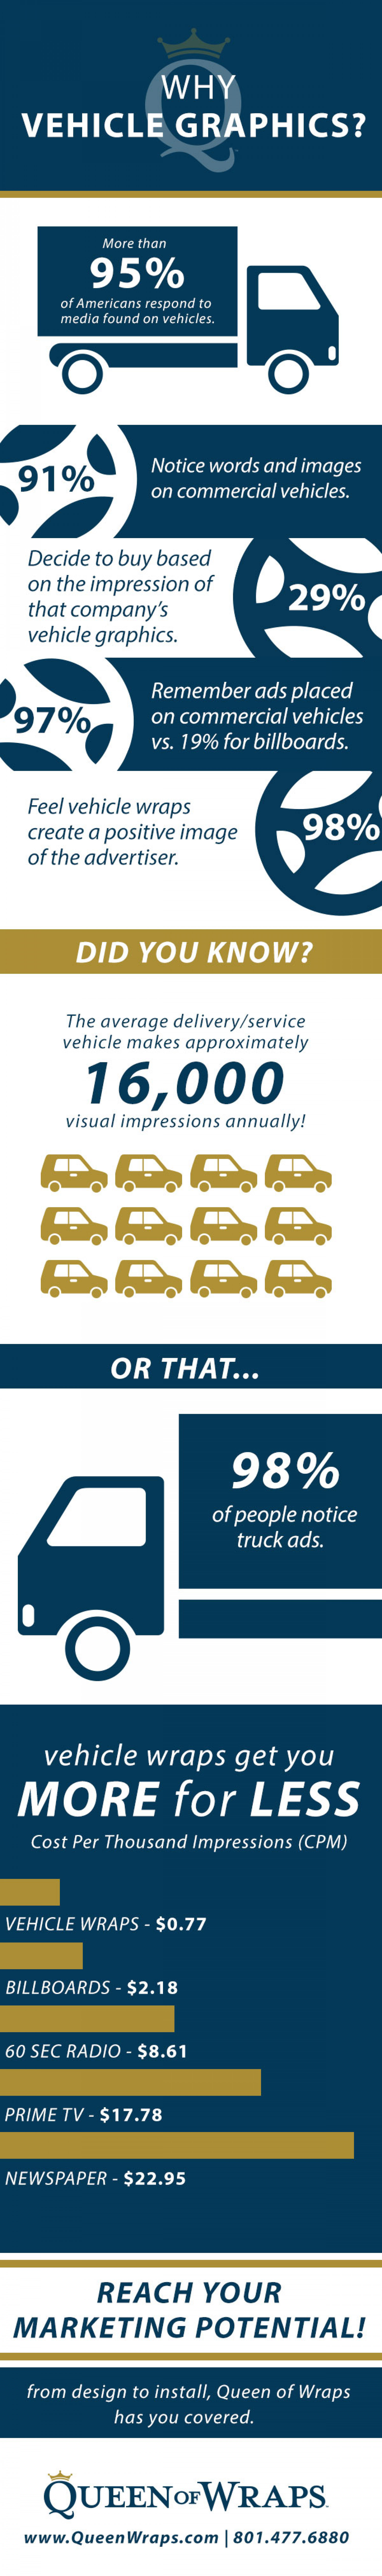 Why Vehicle Graphics Infographic